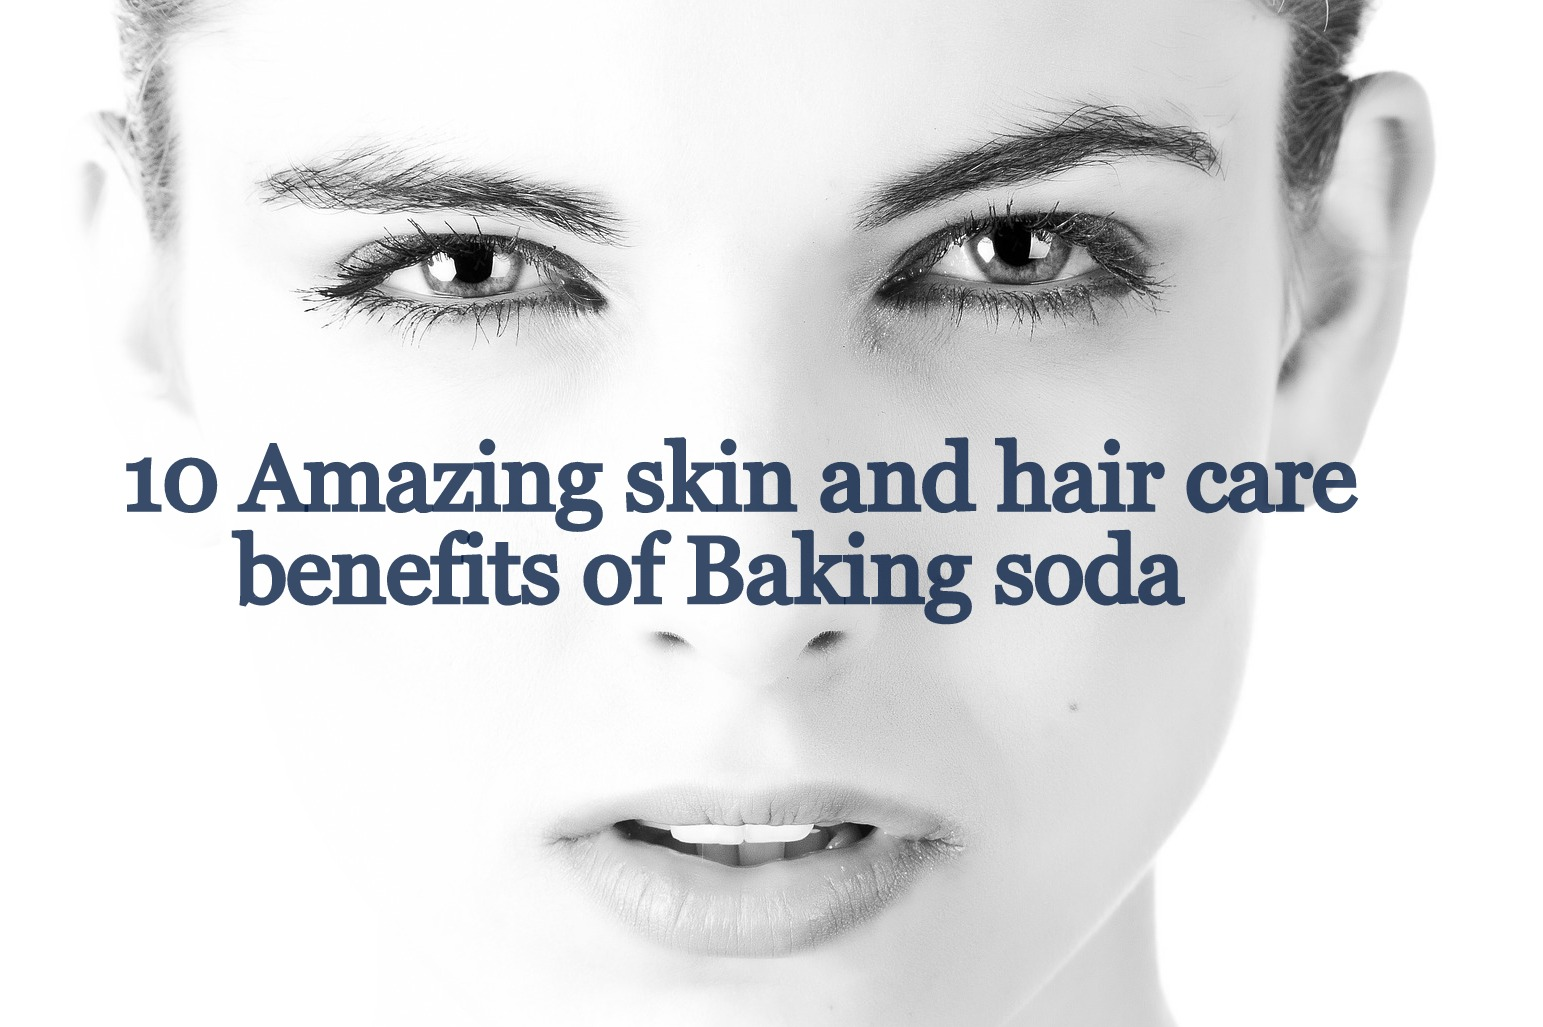 11 Amazing Beauty Benefits of Baking Soda  Skin & Hair care tips